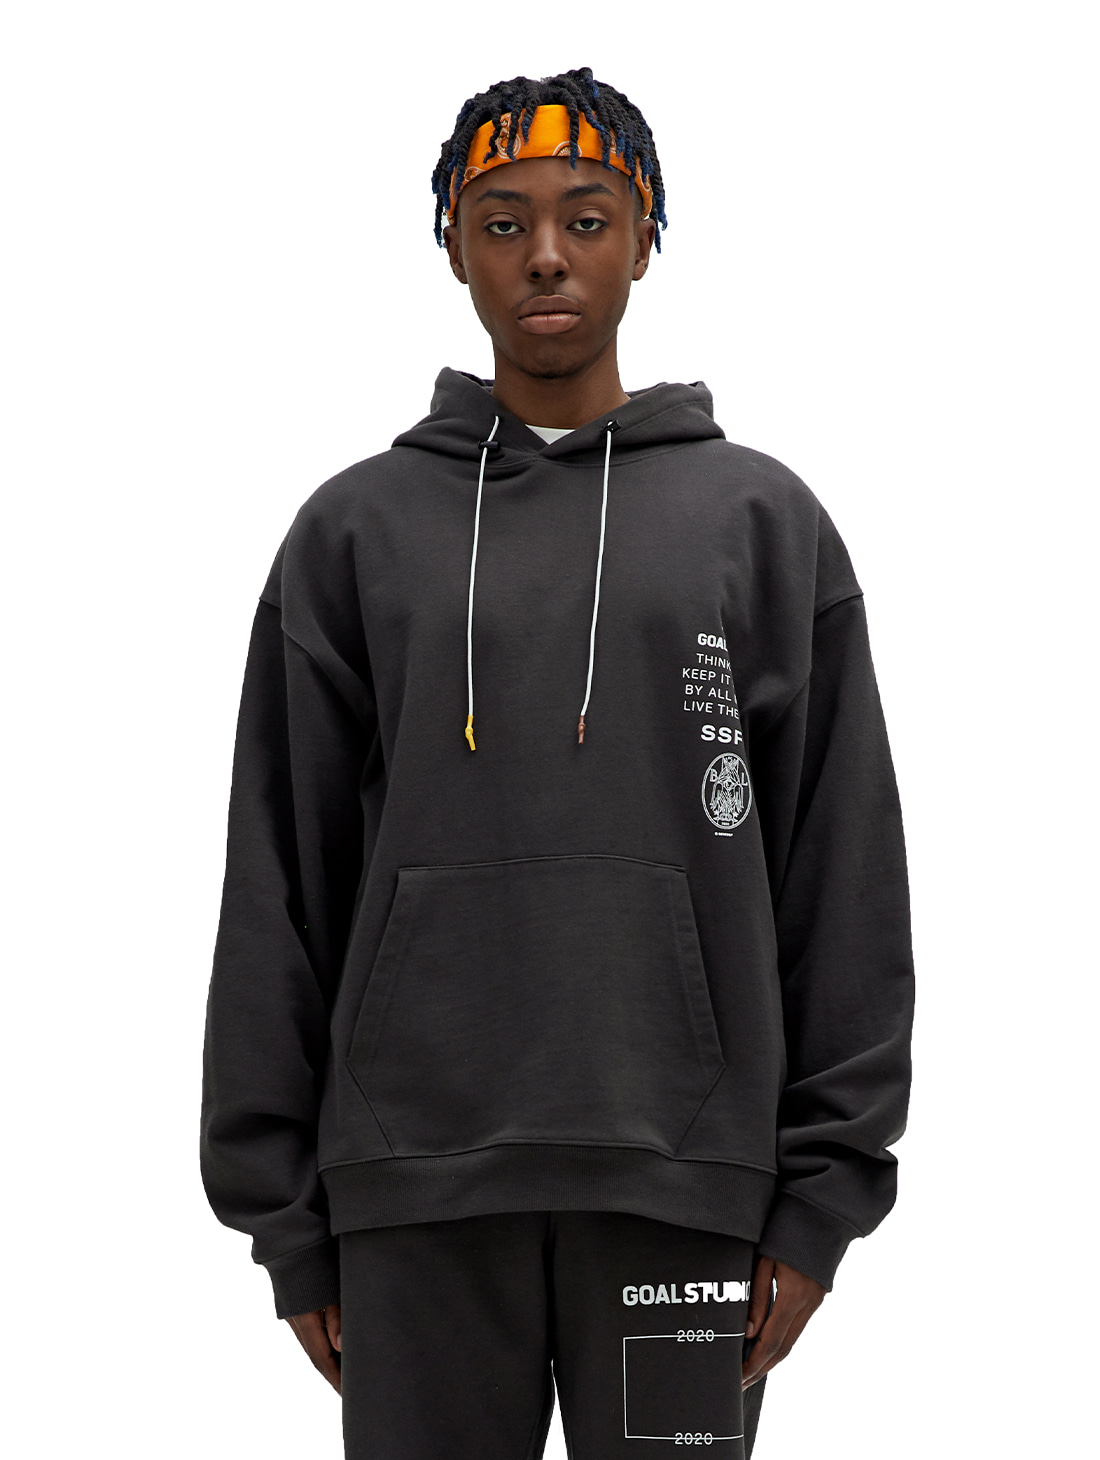 GOALSTUDIO SSFC JERSEY HOODED SWEATSHIRT - CHARCOAL